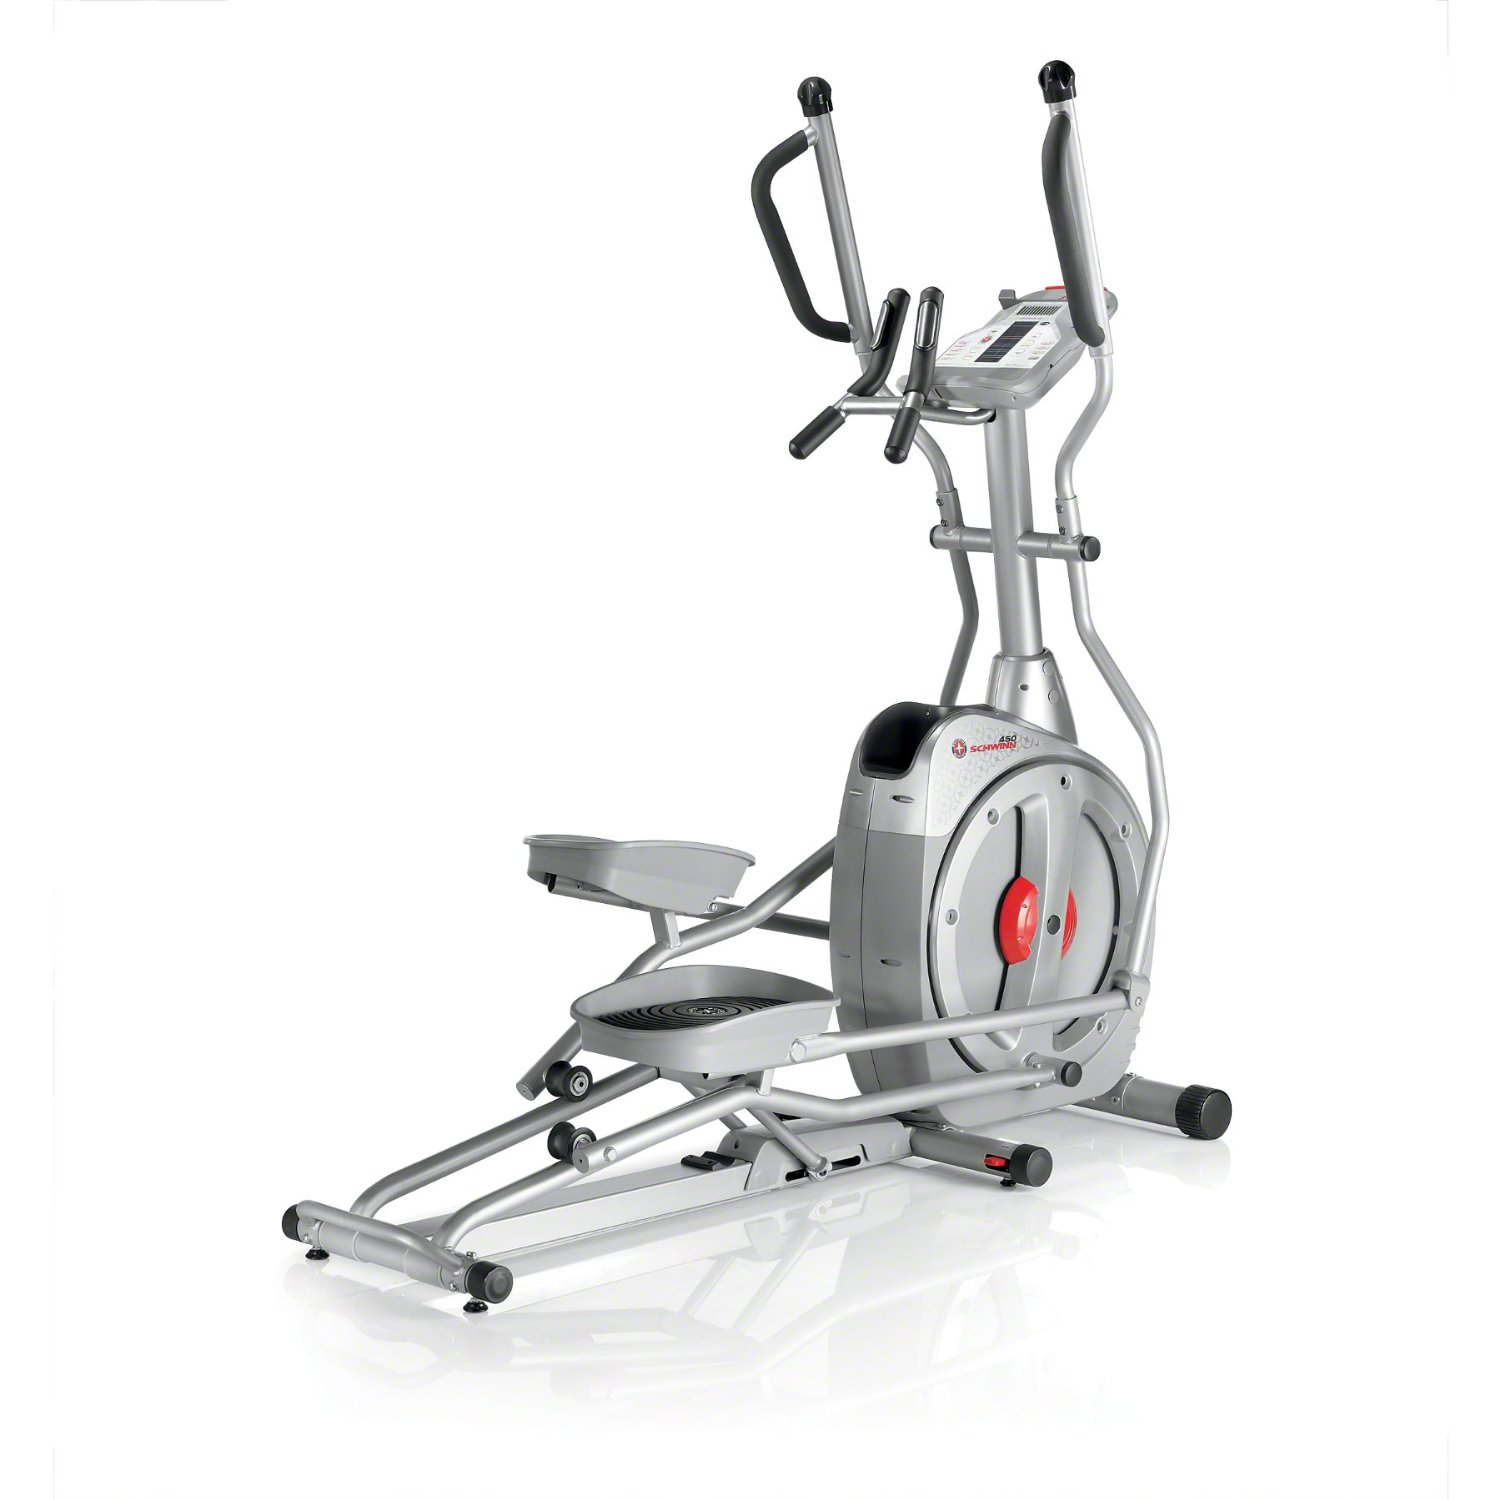 Schwinn 450 Elliptical Trainer Review